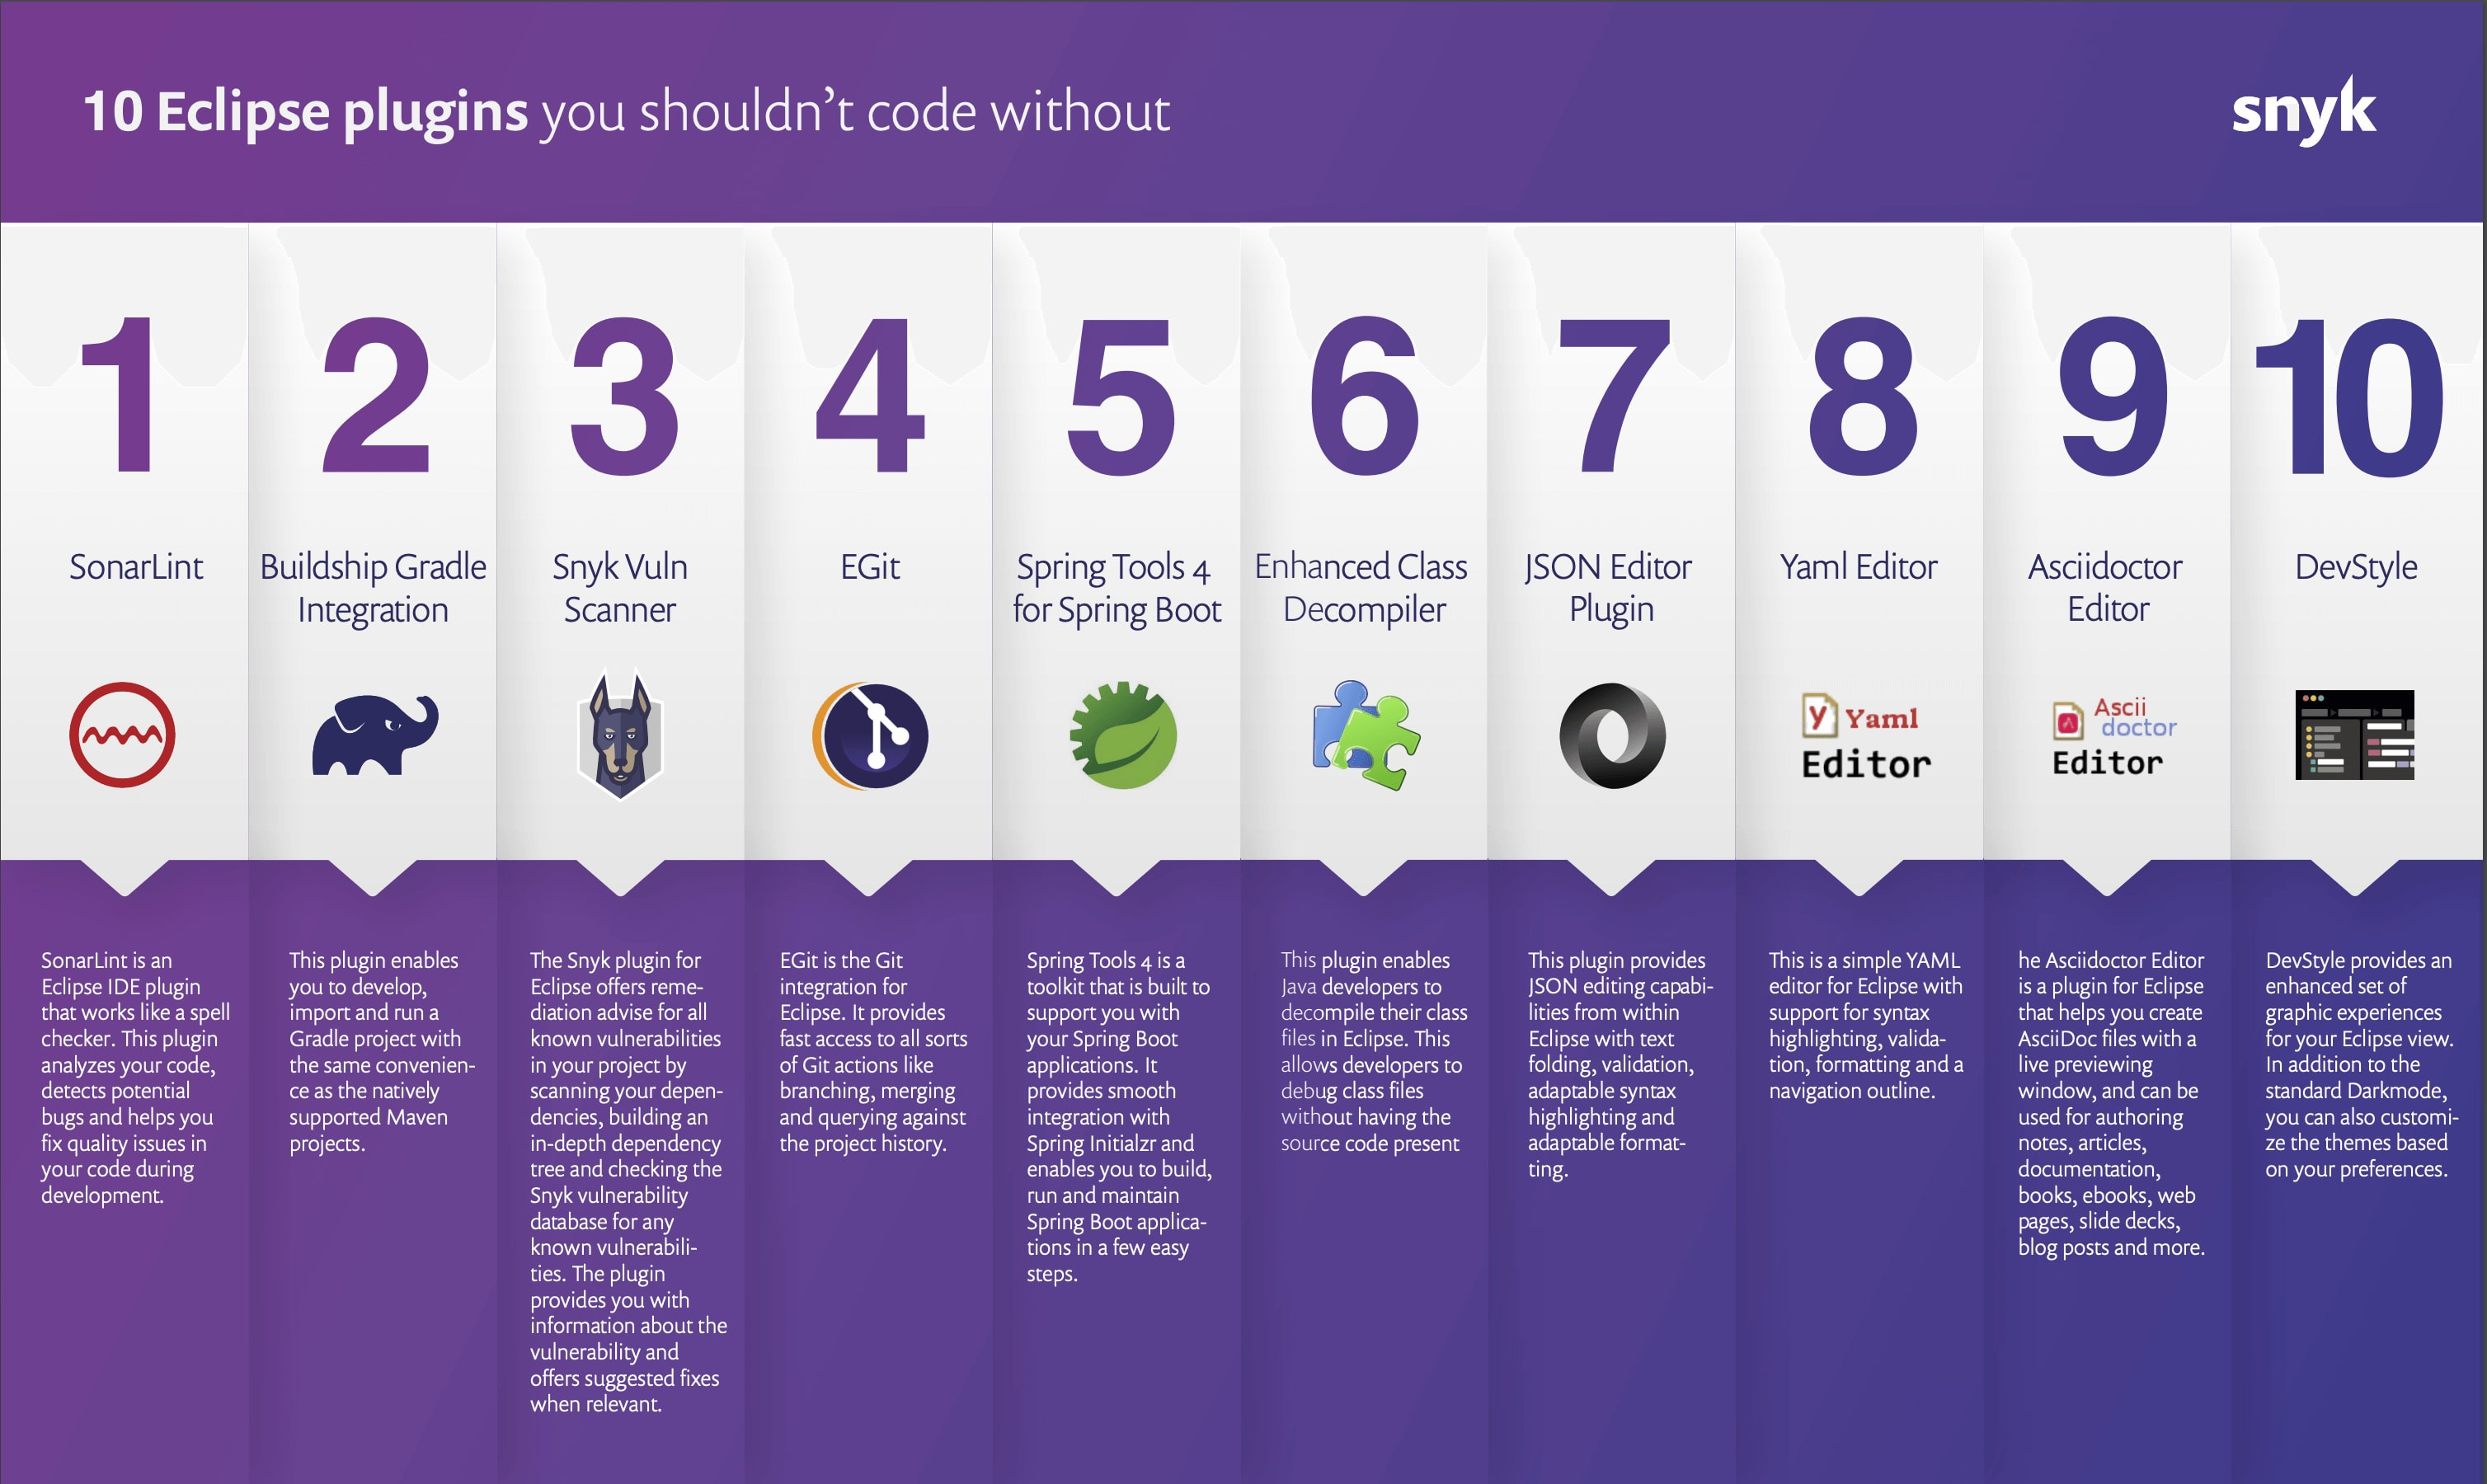 10 Eclipse plugins you shouldn't code without